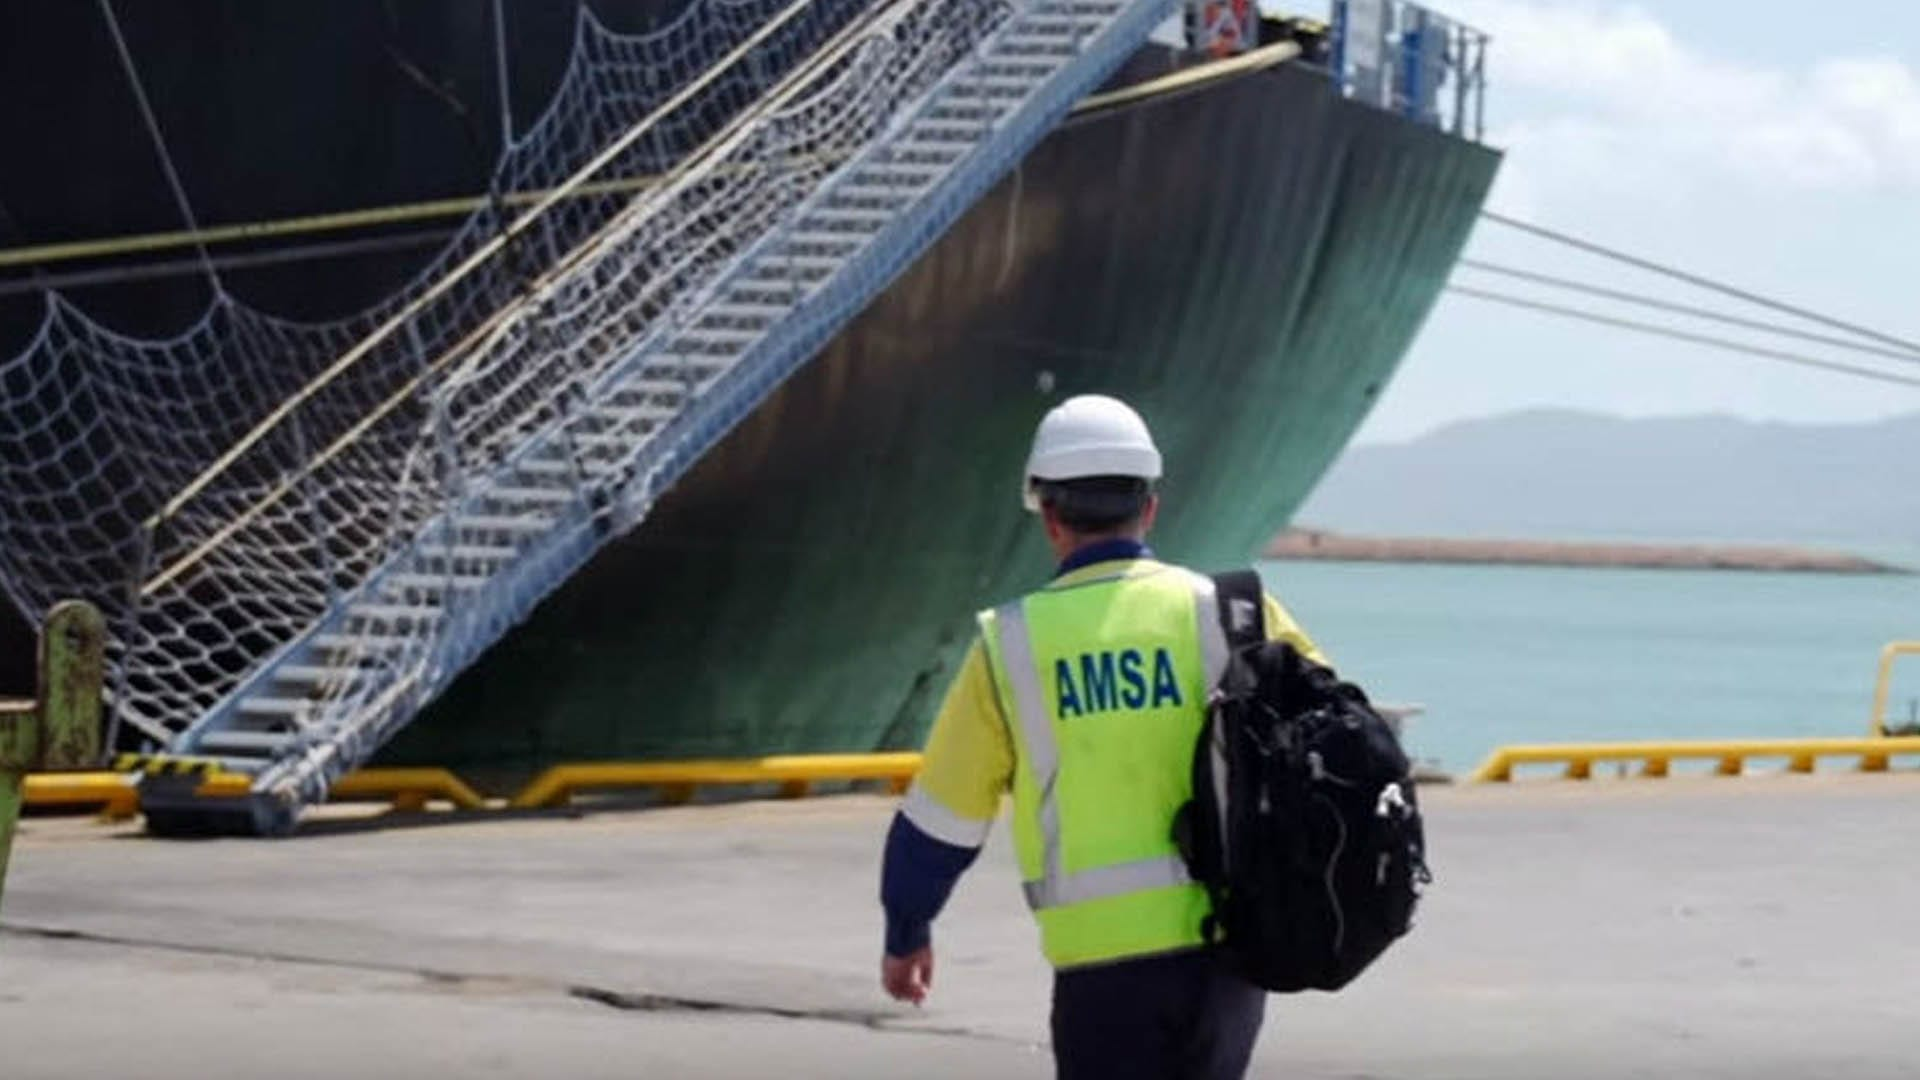 Chinese Bulk Carrier Detained Over Crew Wages